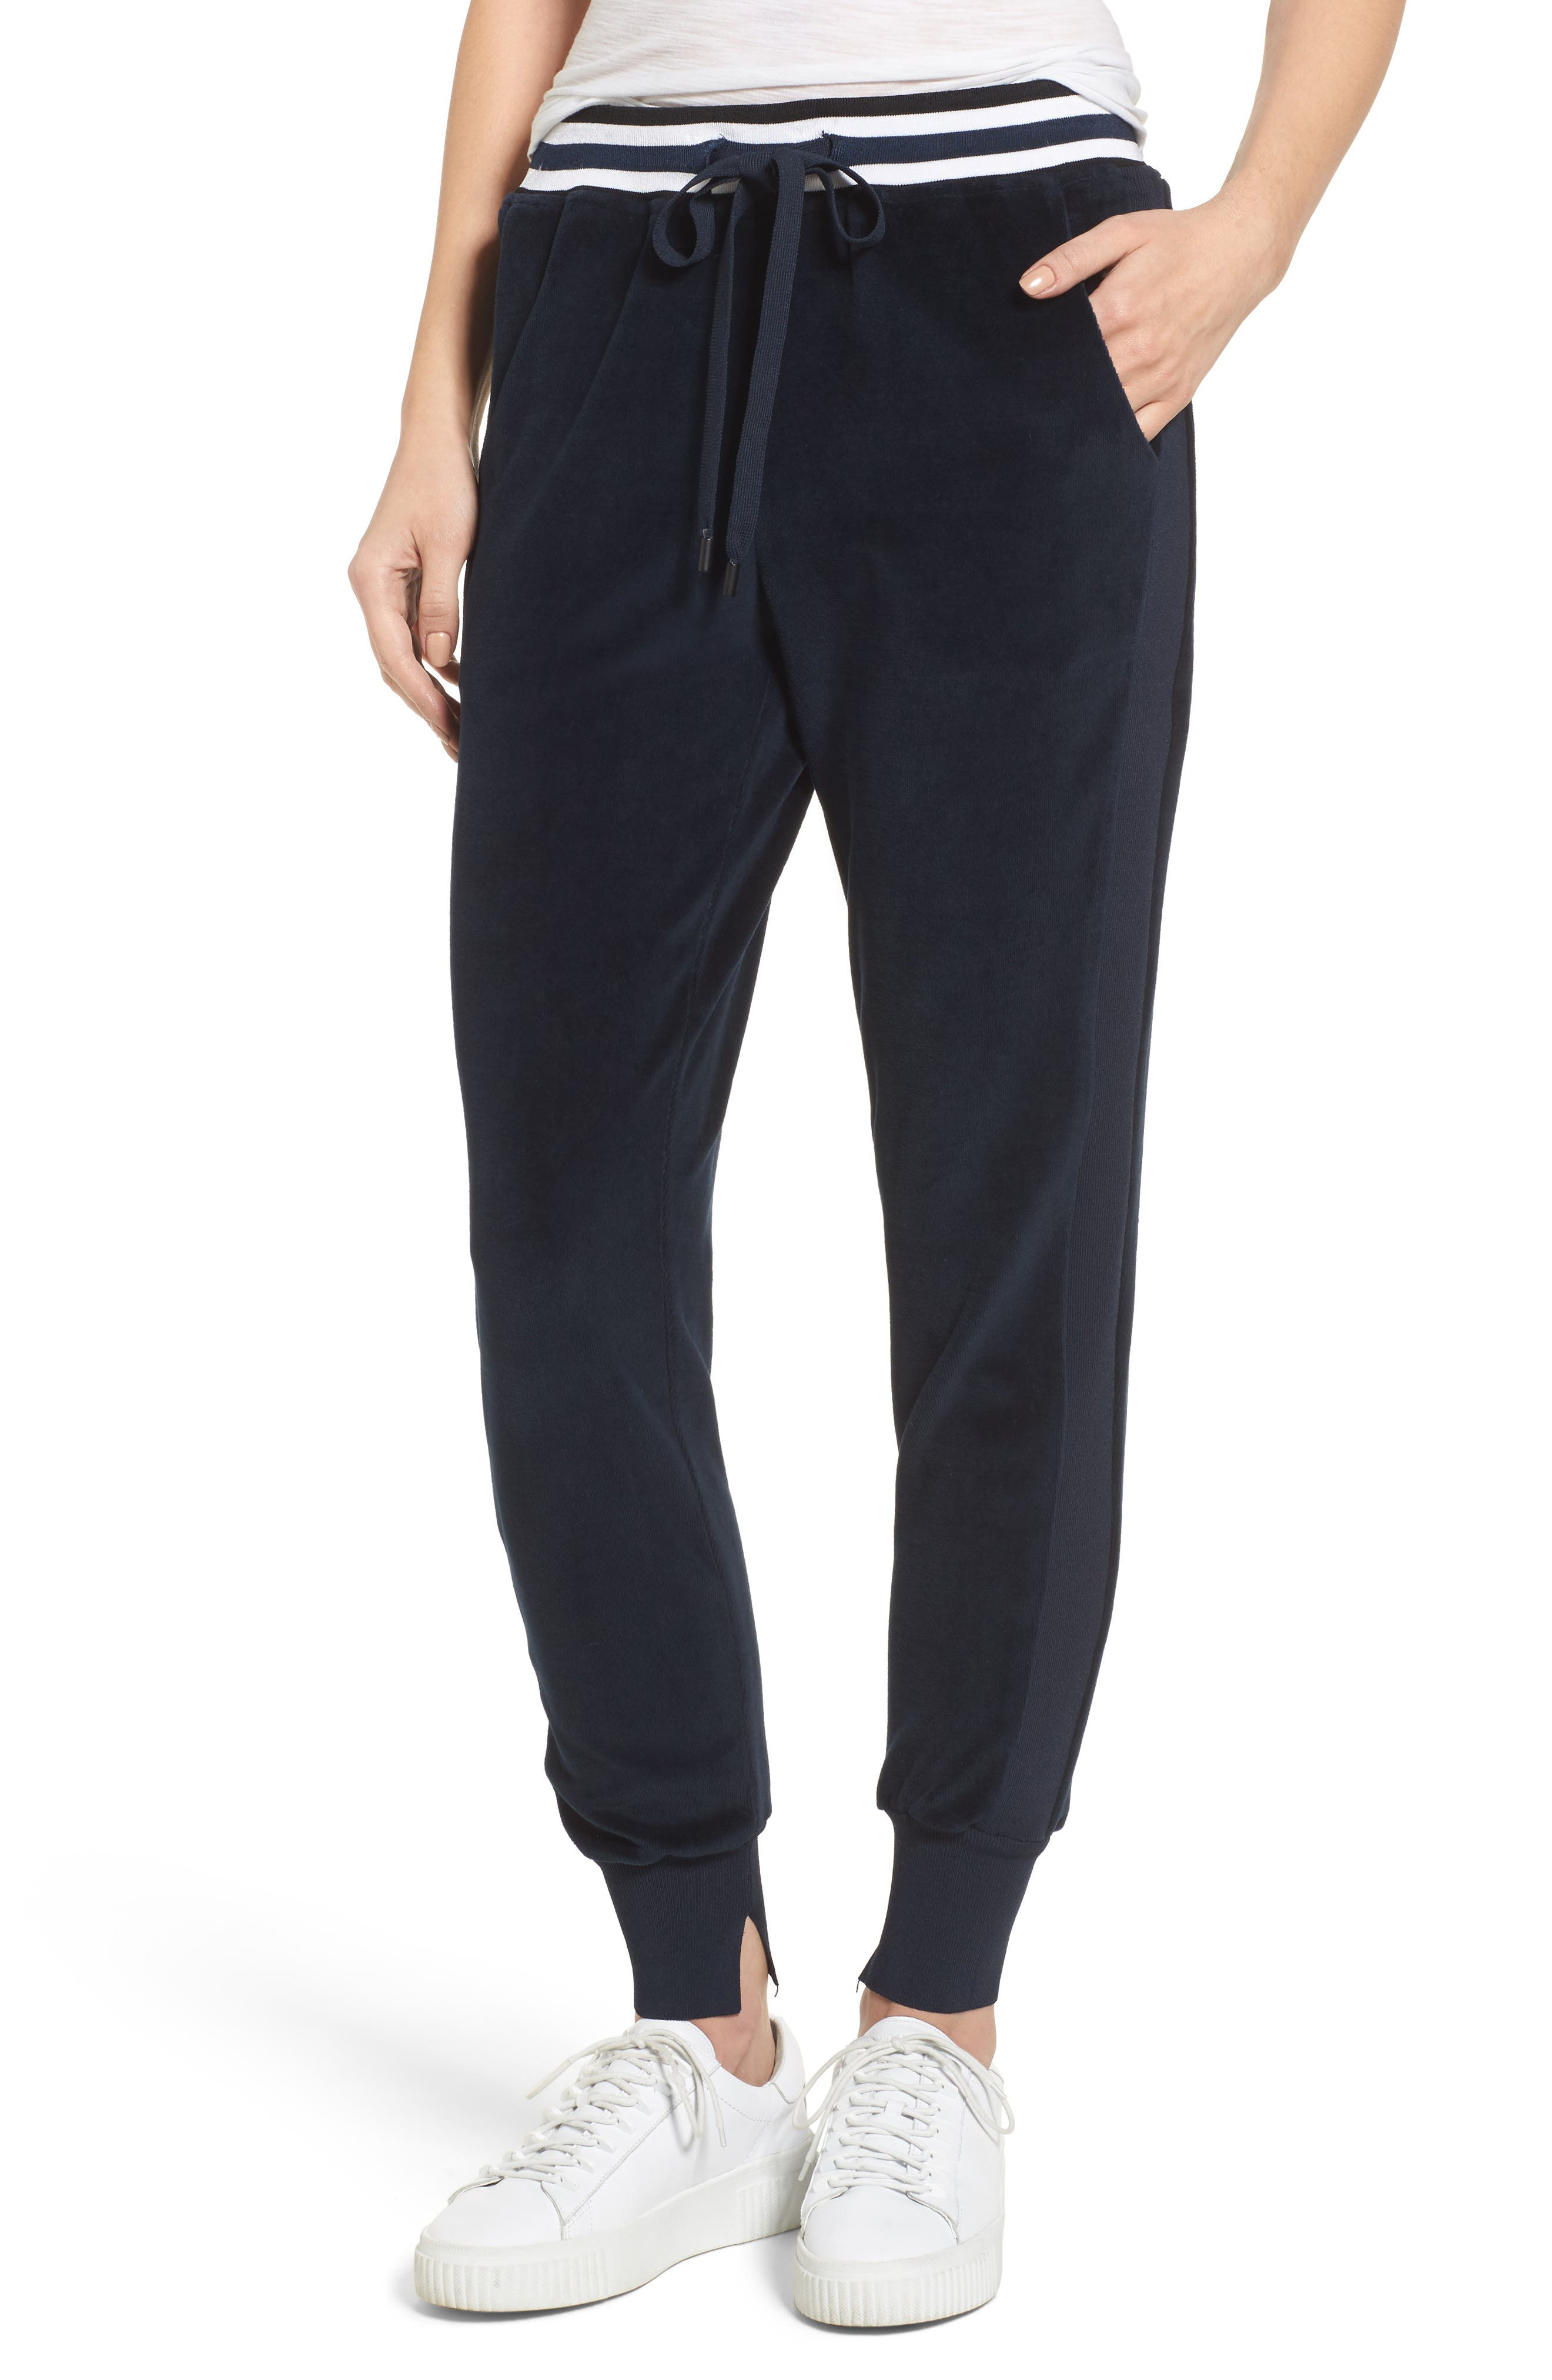 KENDALL + KYLIE Velour Jogger Pants